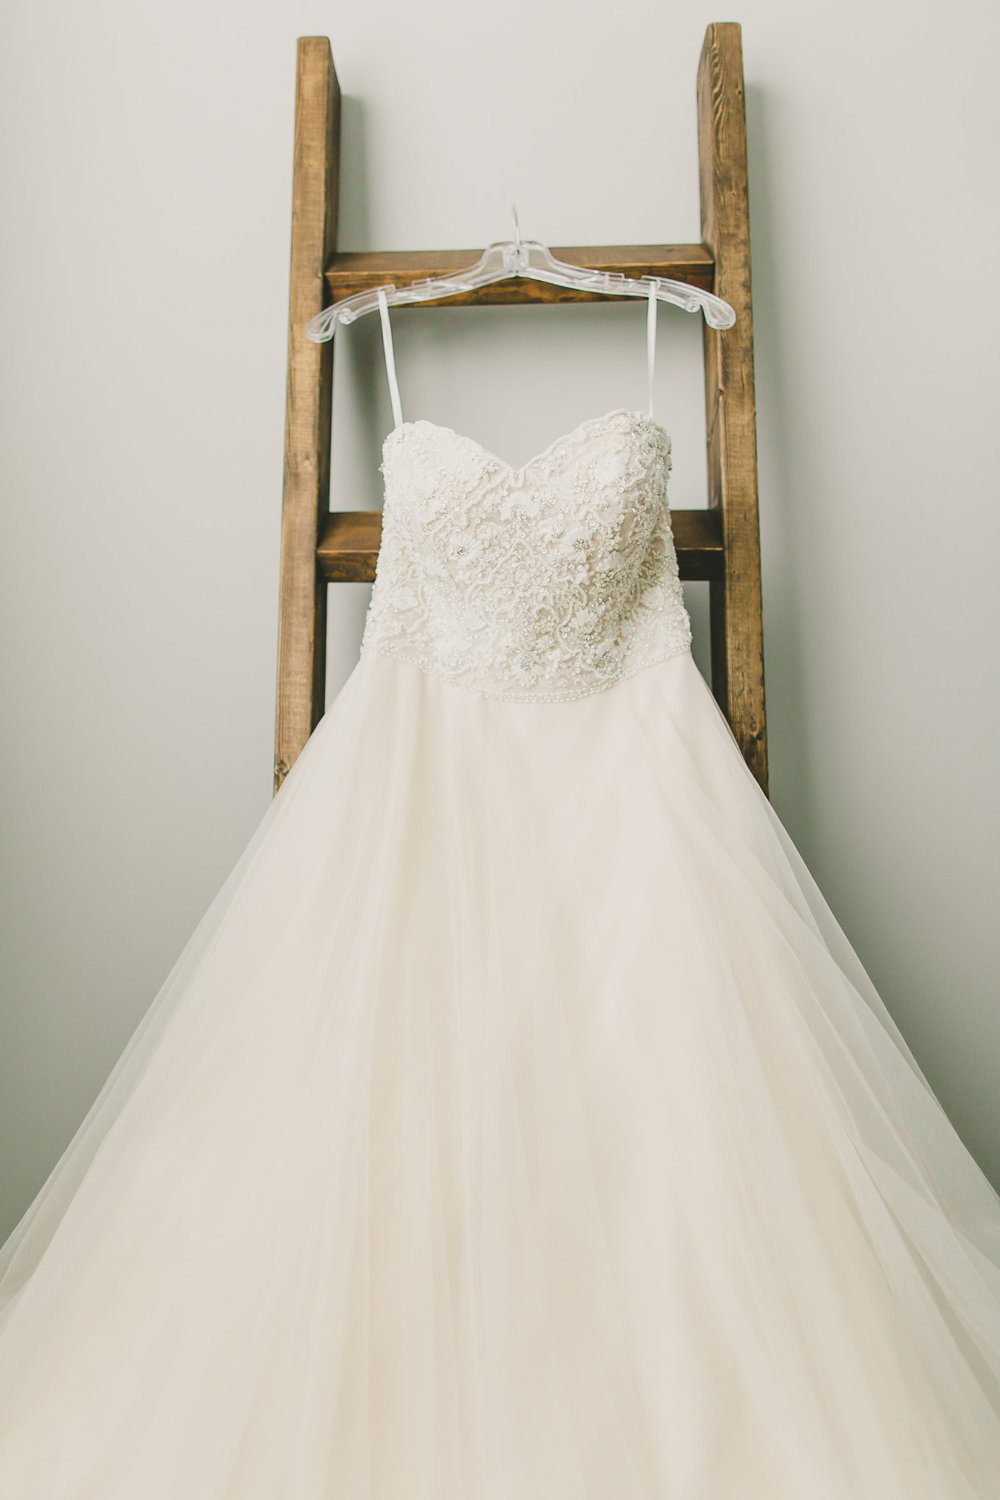 RedDeerWeddingJennaDevon (4 of 938).jpg